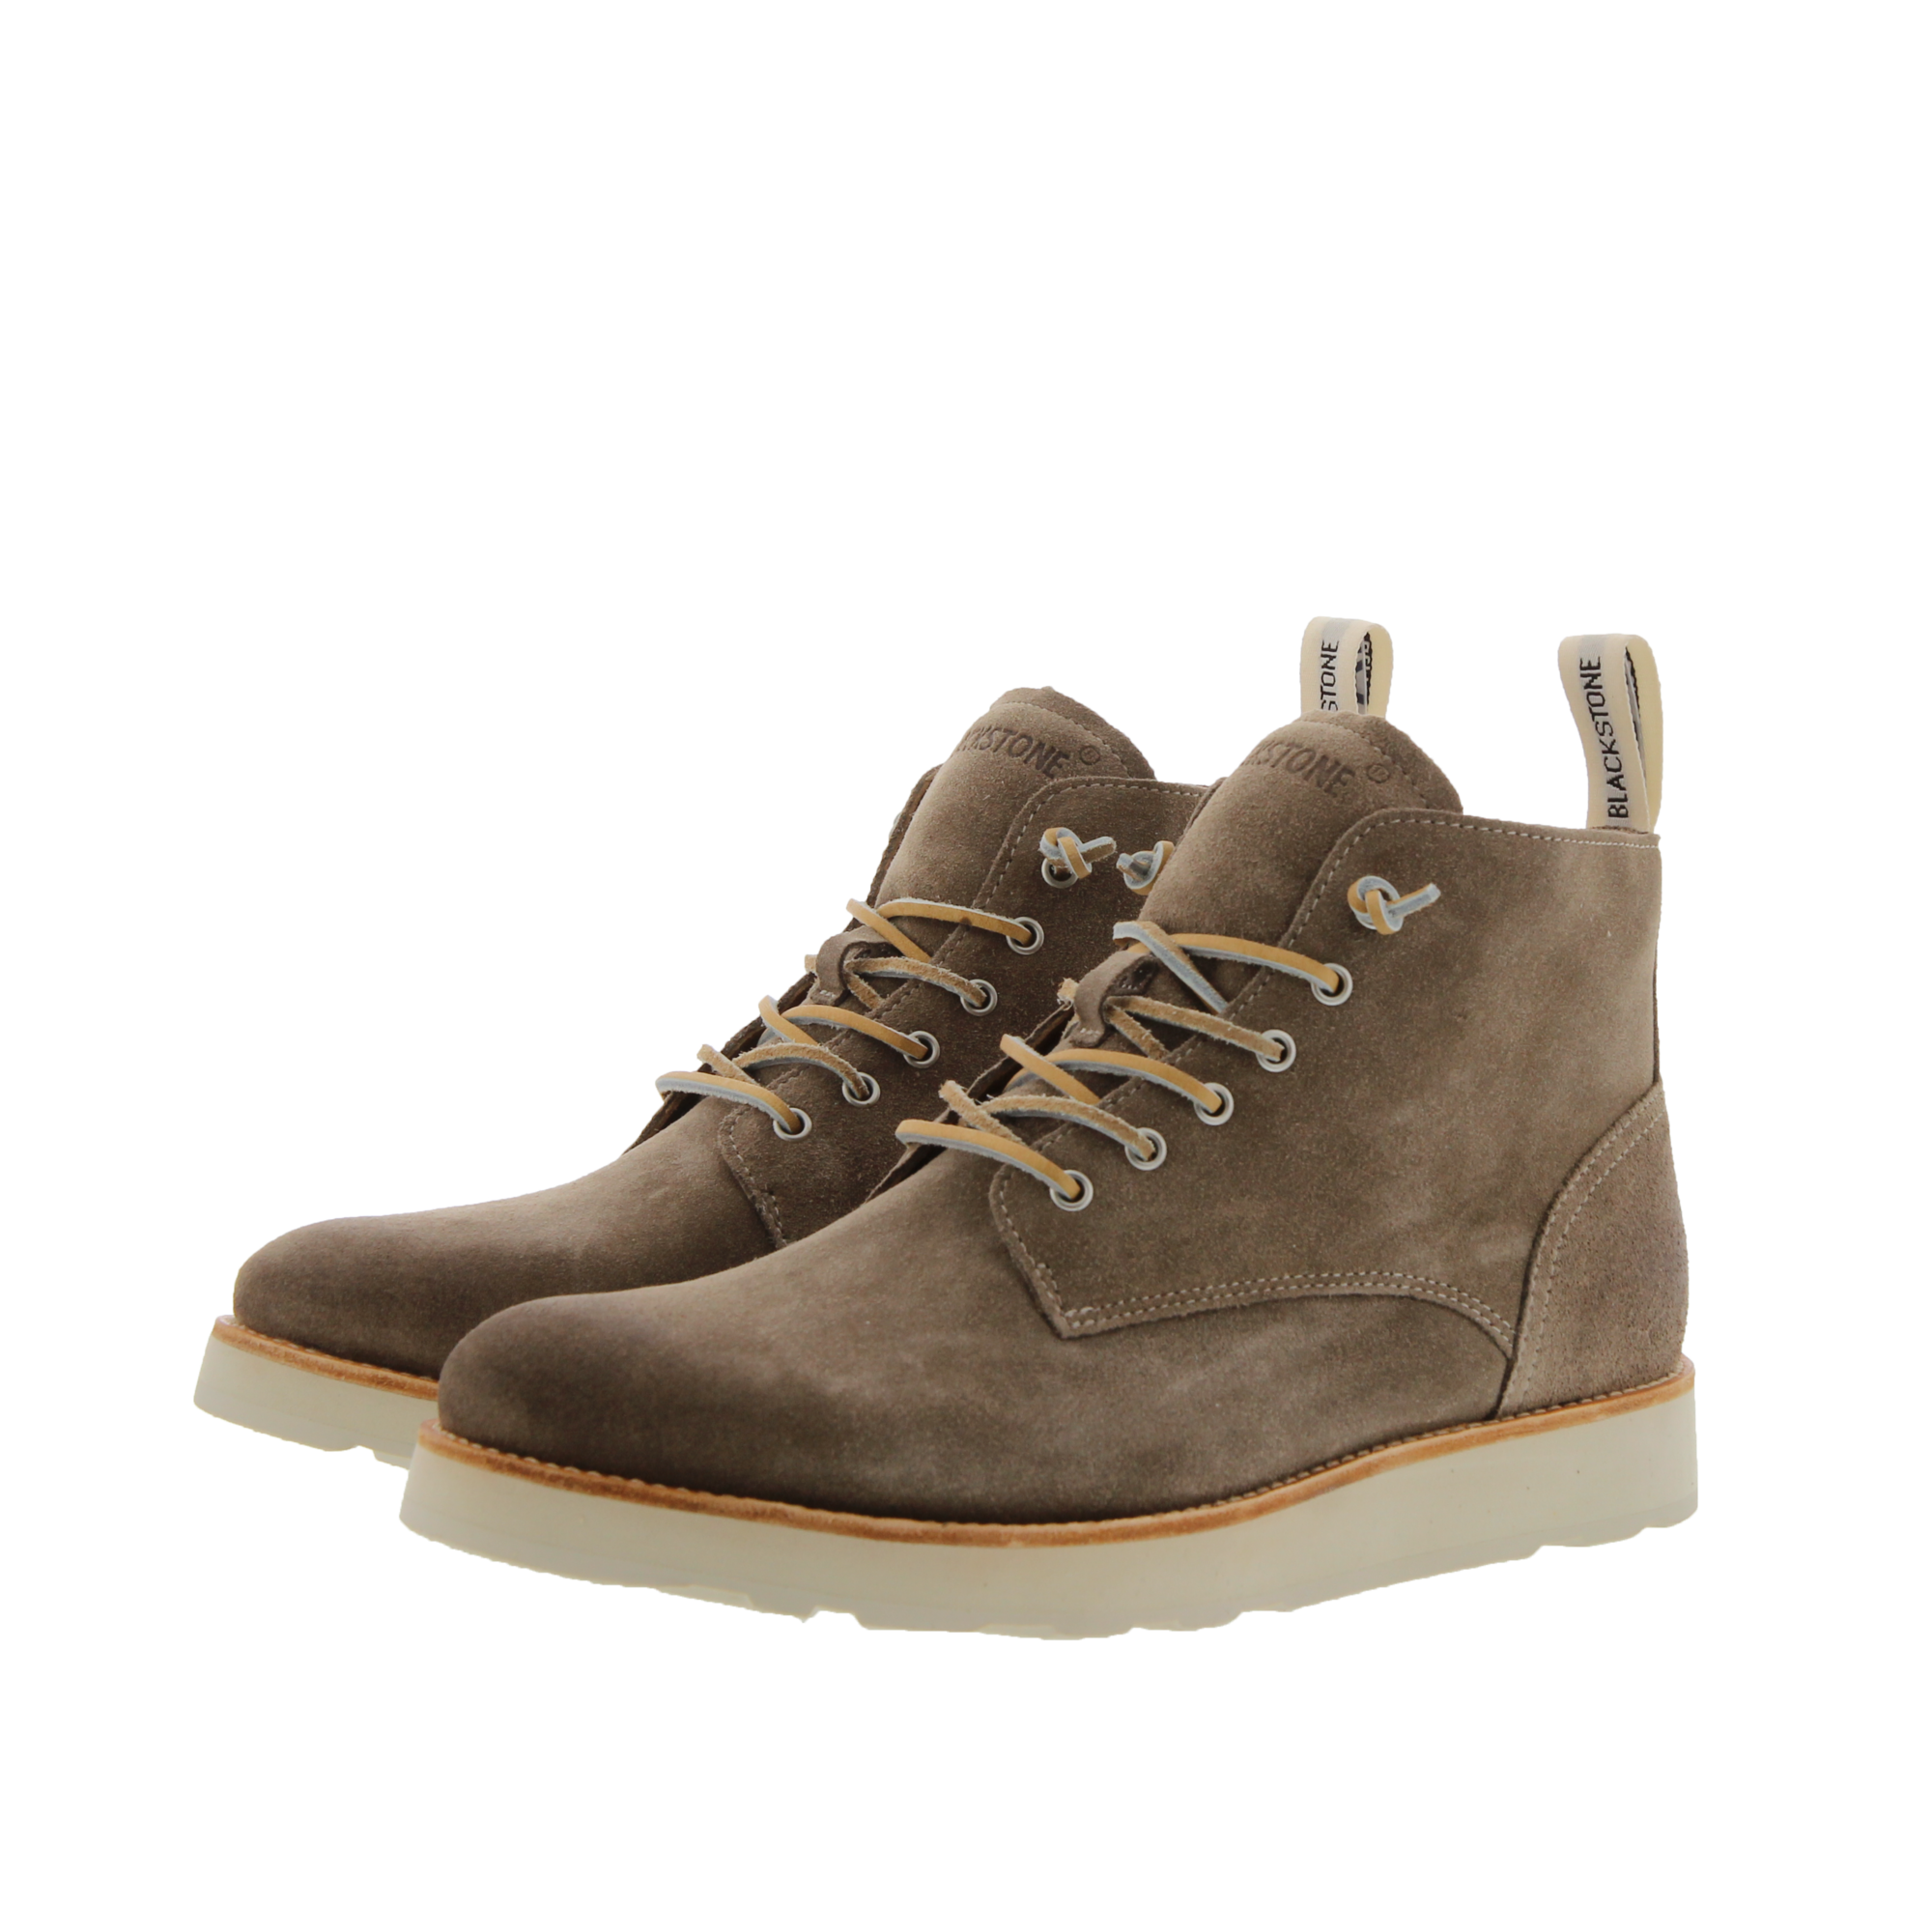 OM53 SHITAKE - MEN'S HIGH TOP SUEDE BOOTS